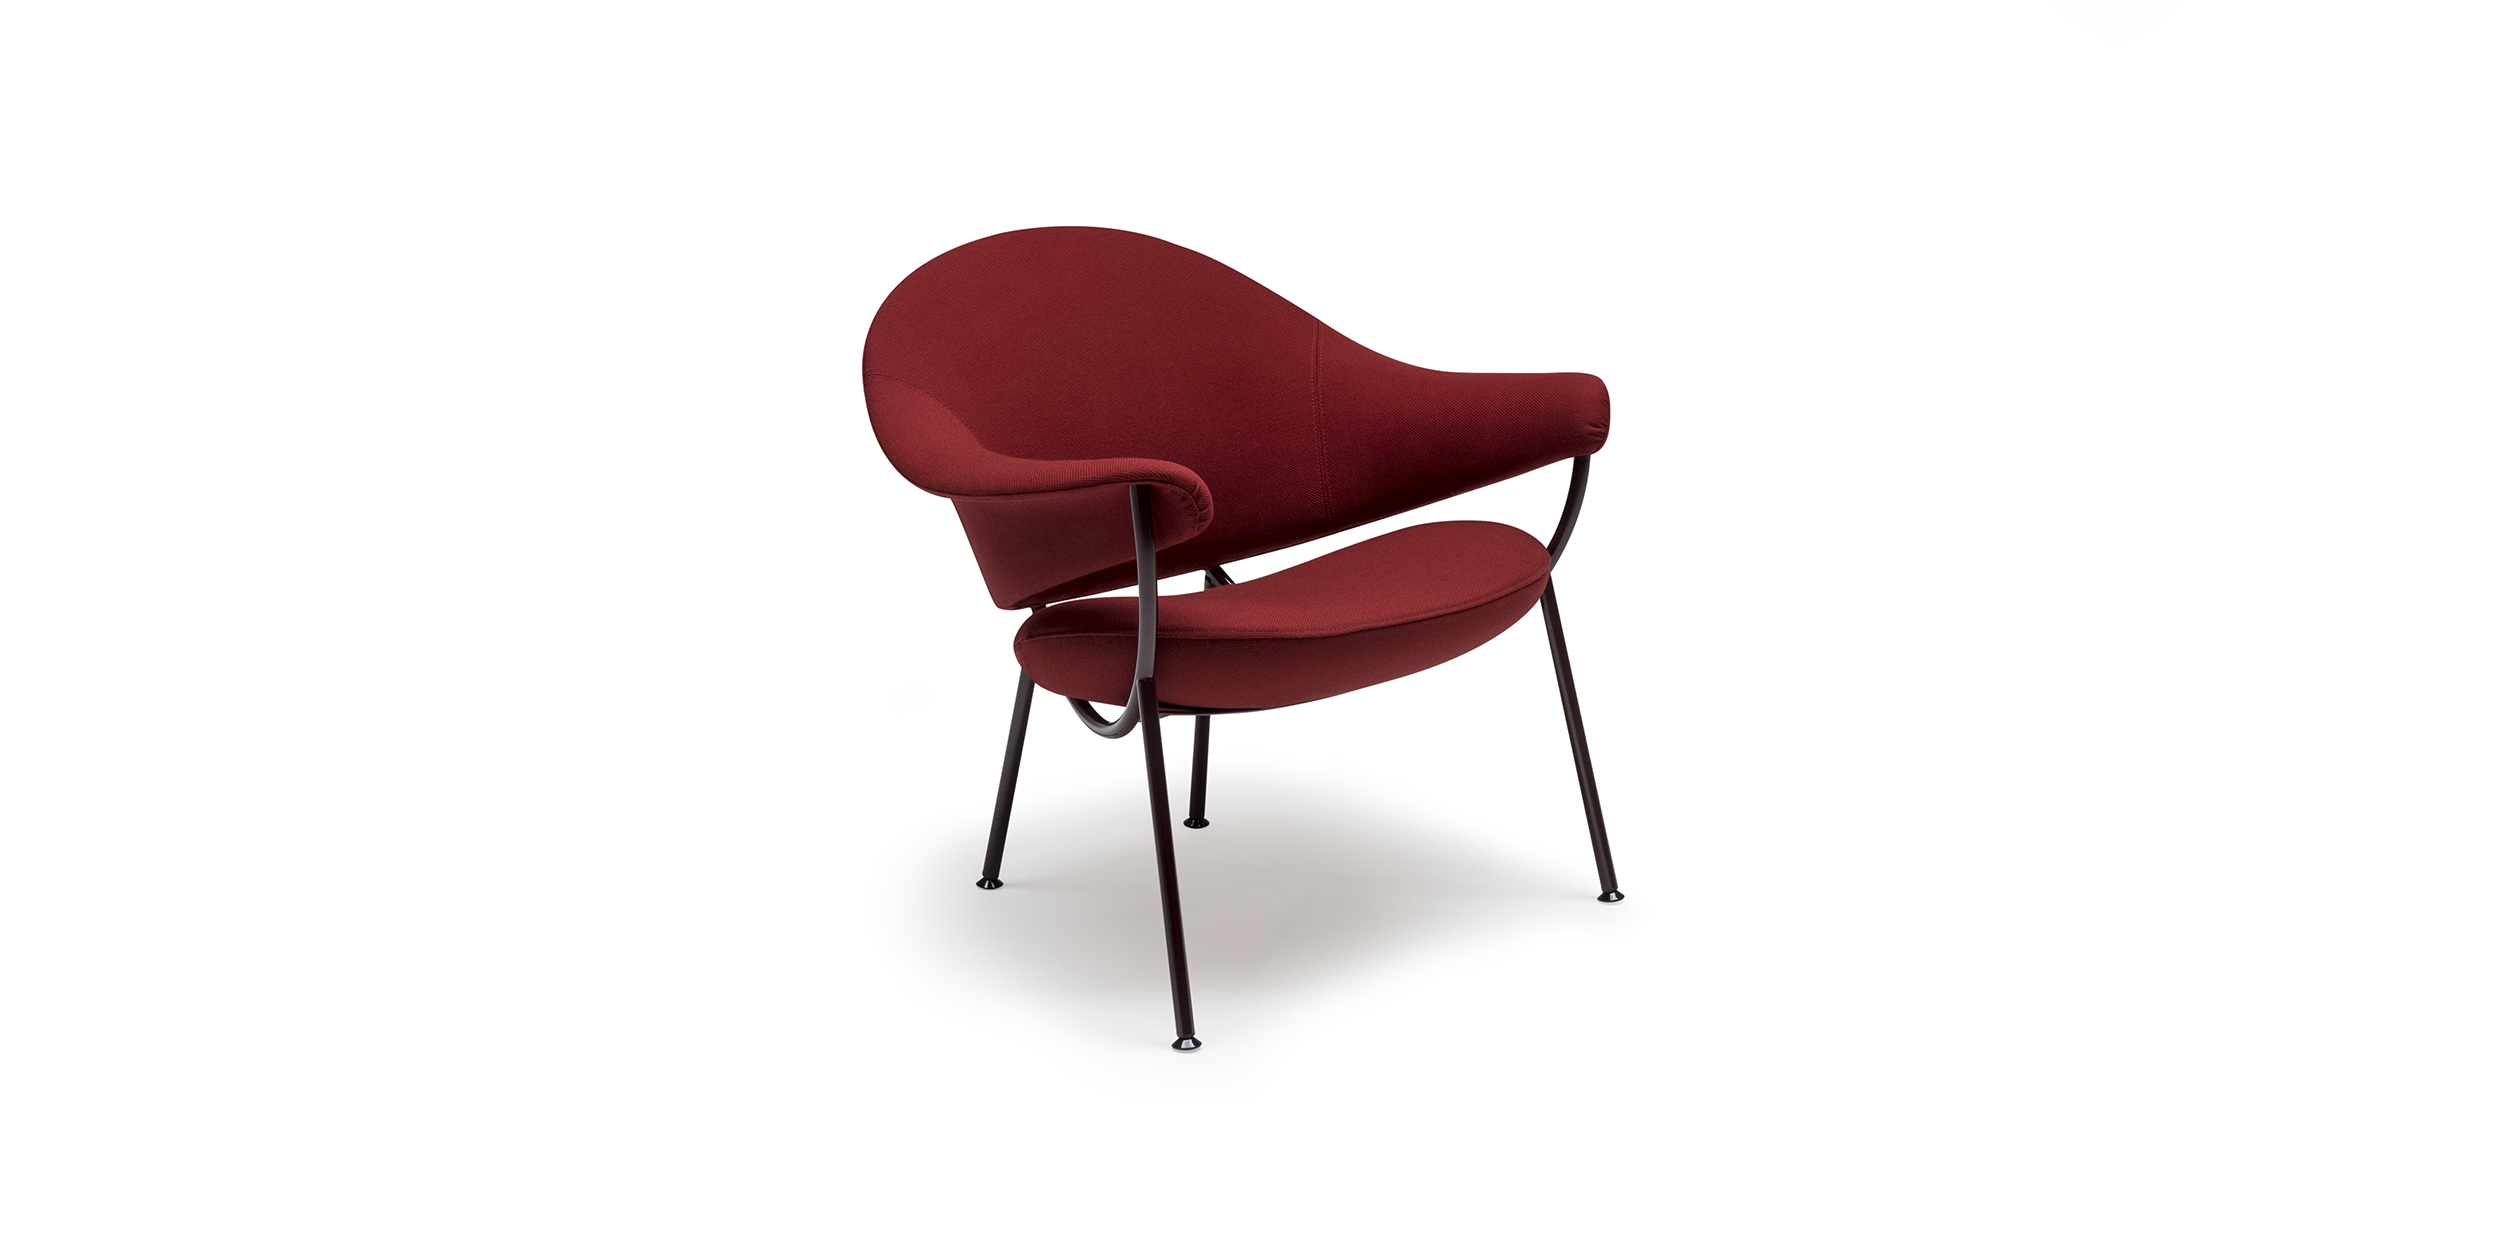 Murano, Easy chair by Luca Nichetto